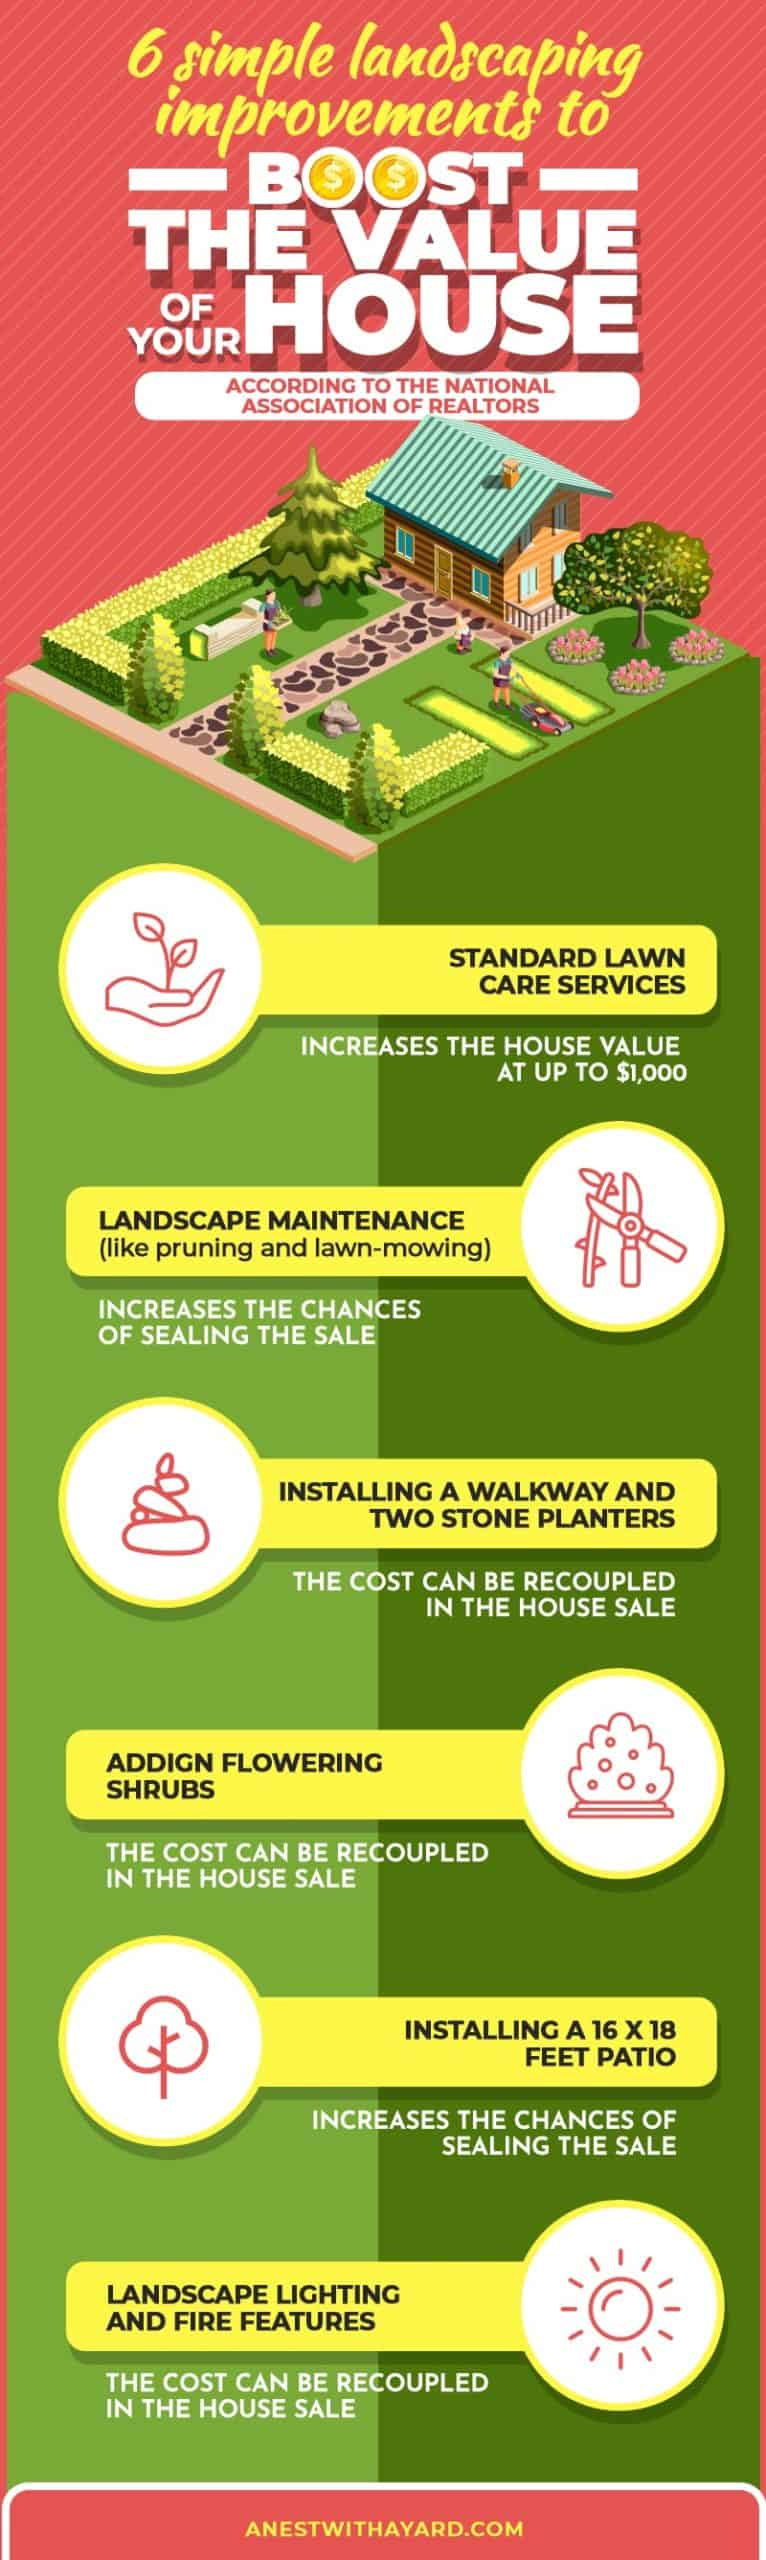 6 simple landscaping improvements  to increase curb appeal #curbAppeal #homeImprovements #landscaping #backyard